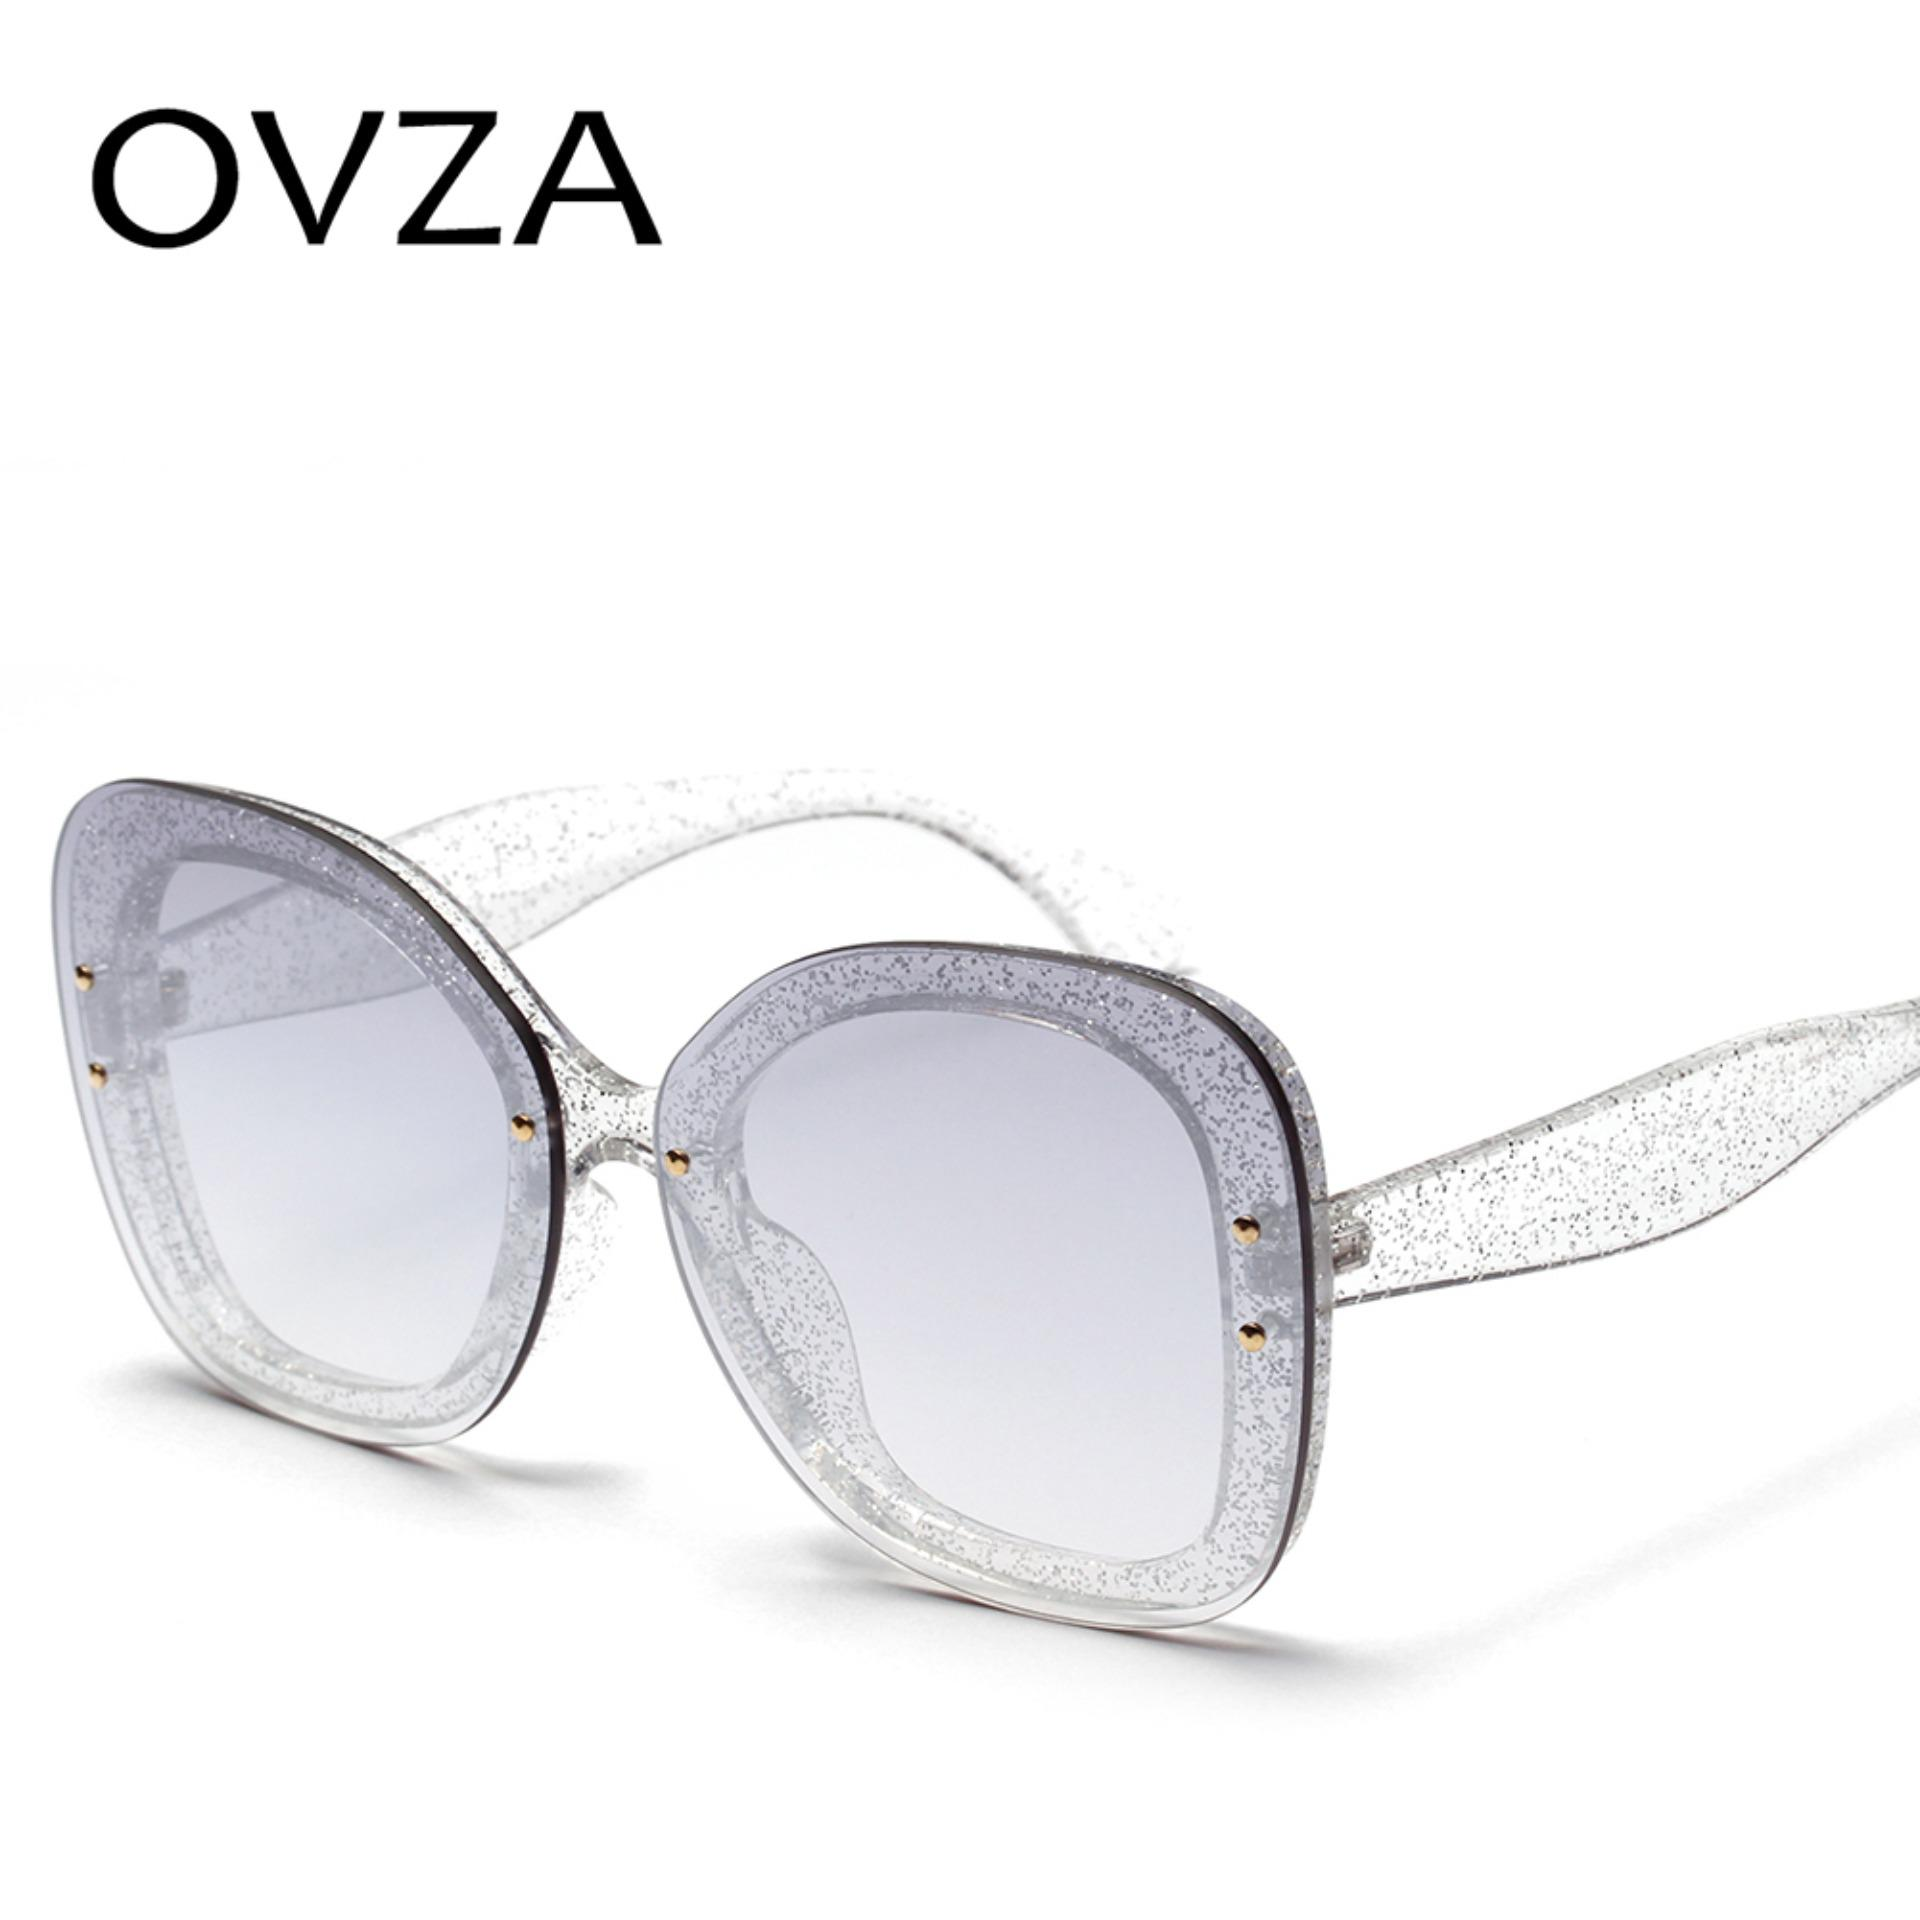 a5d9a63f9458 OVZA Fashion Woman 2018 Sunglasses Rimless Girl Square Luxury Sunglasses  Pink Gradient Glasses Big Frames S6045